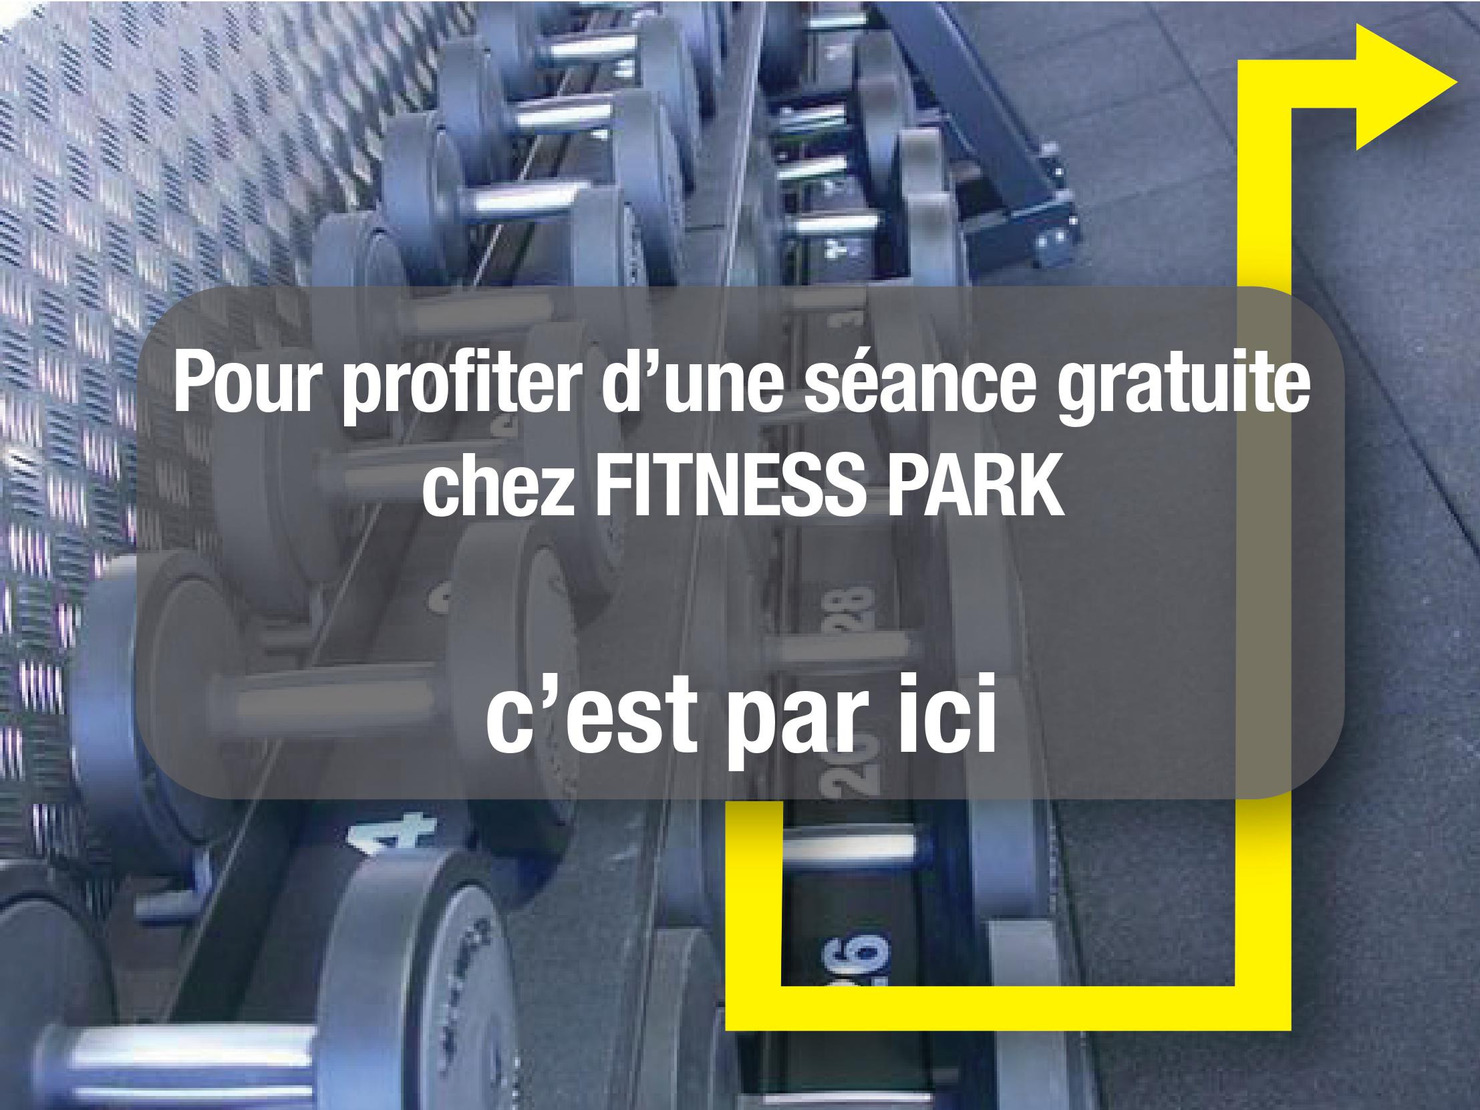 fitness park mulhouse tarifs avis horaires essai gratuit. Black Bedroom Furniture Sets. Home Design Ideas